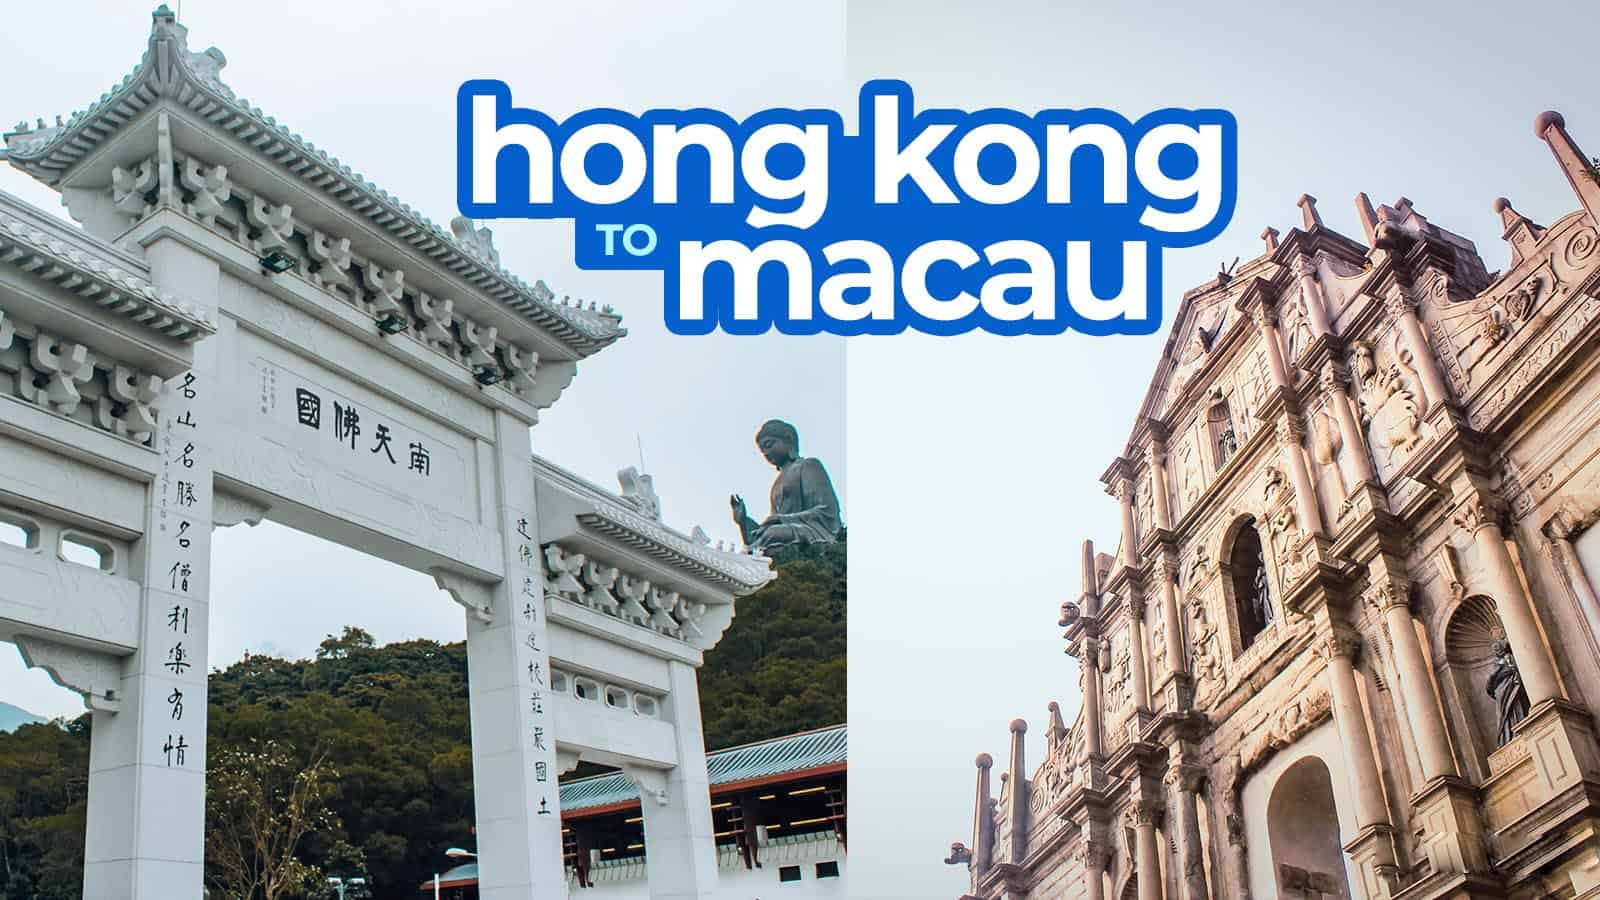 HONG KONG TO MACAU BY FERRY or BUS (via Sea Bridge)